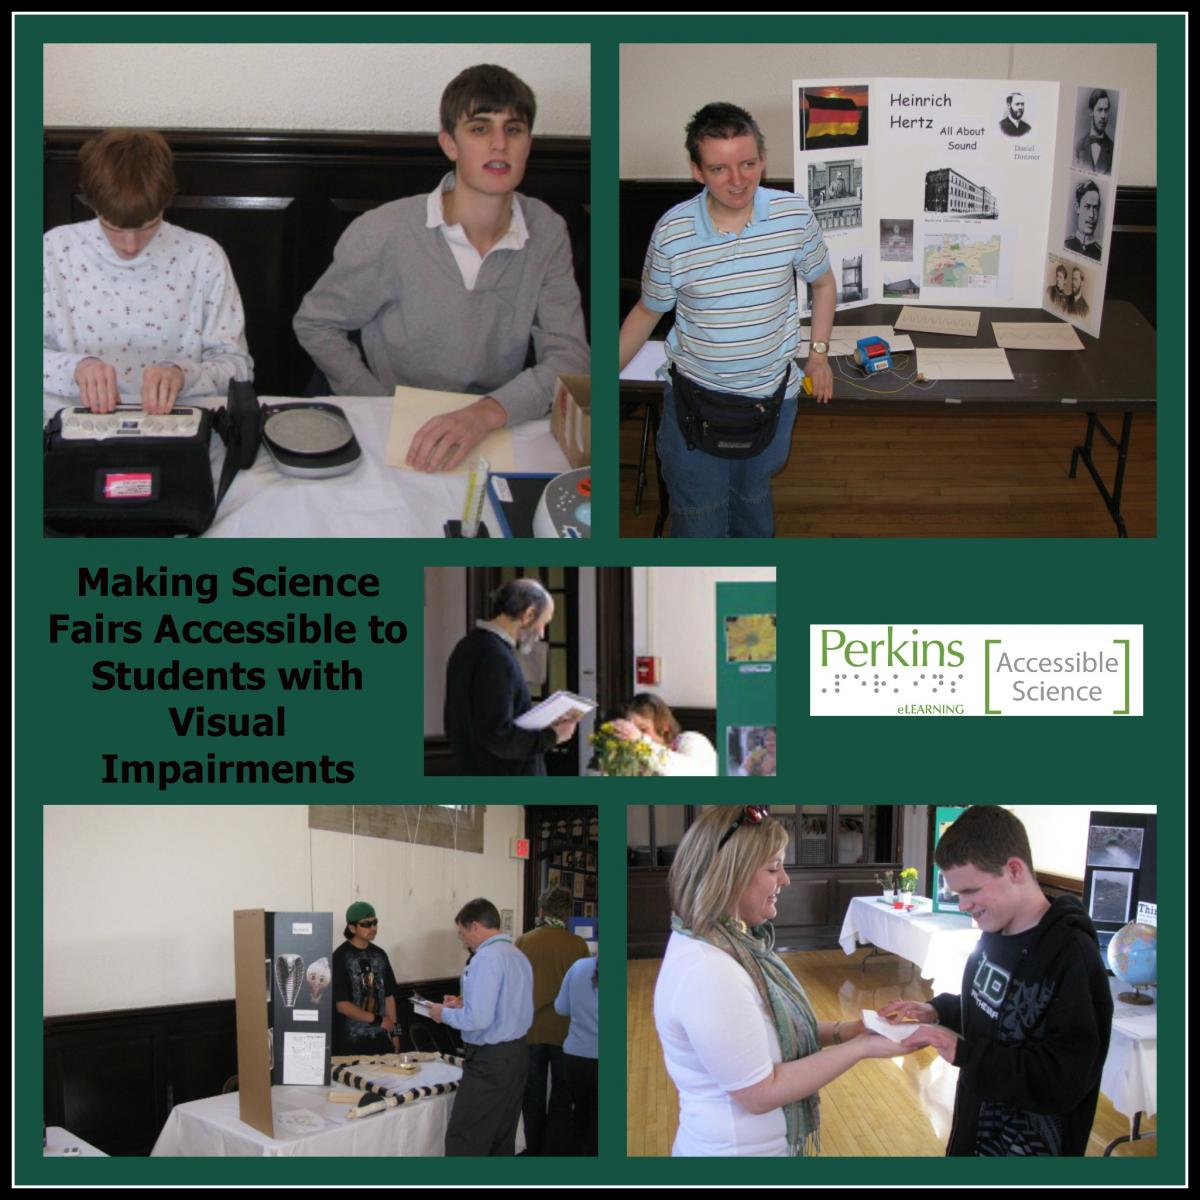 collage of making science fairs accessible to students who are blind or visuallly impaired